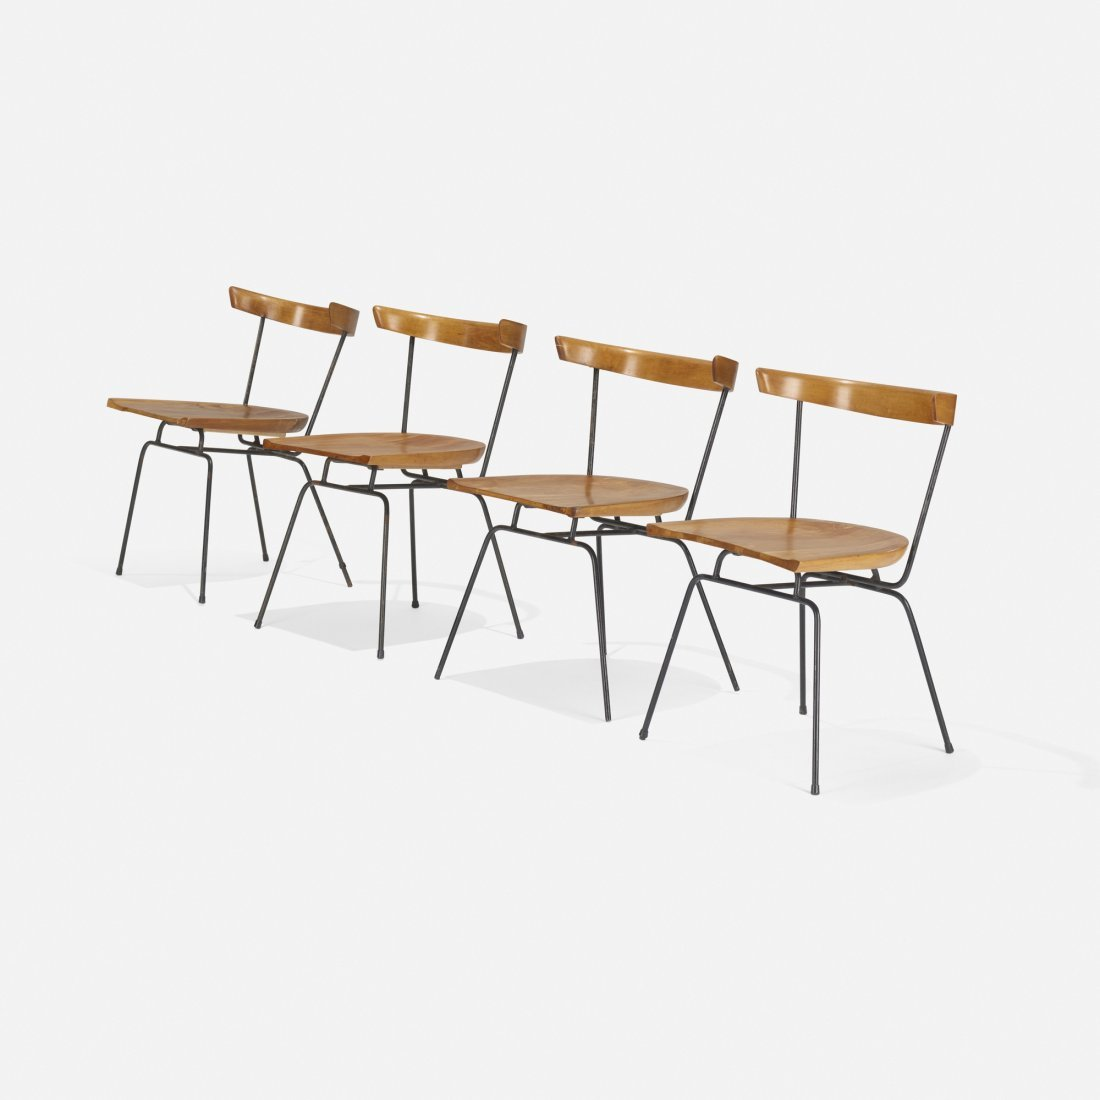 Paul McCobb, dining chairs model 1535, set of four